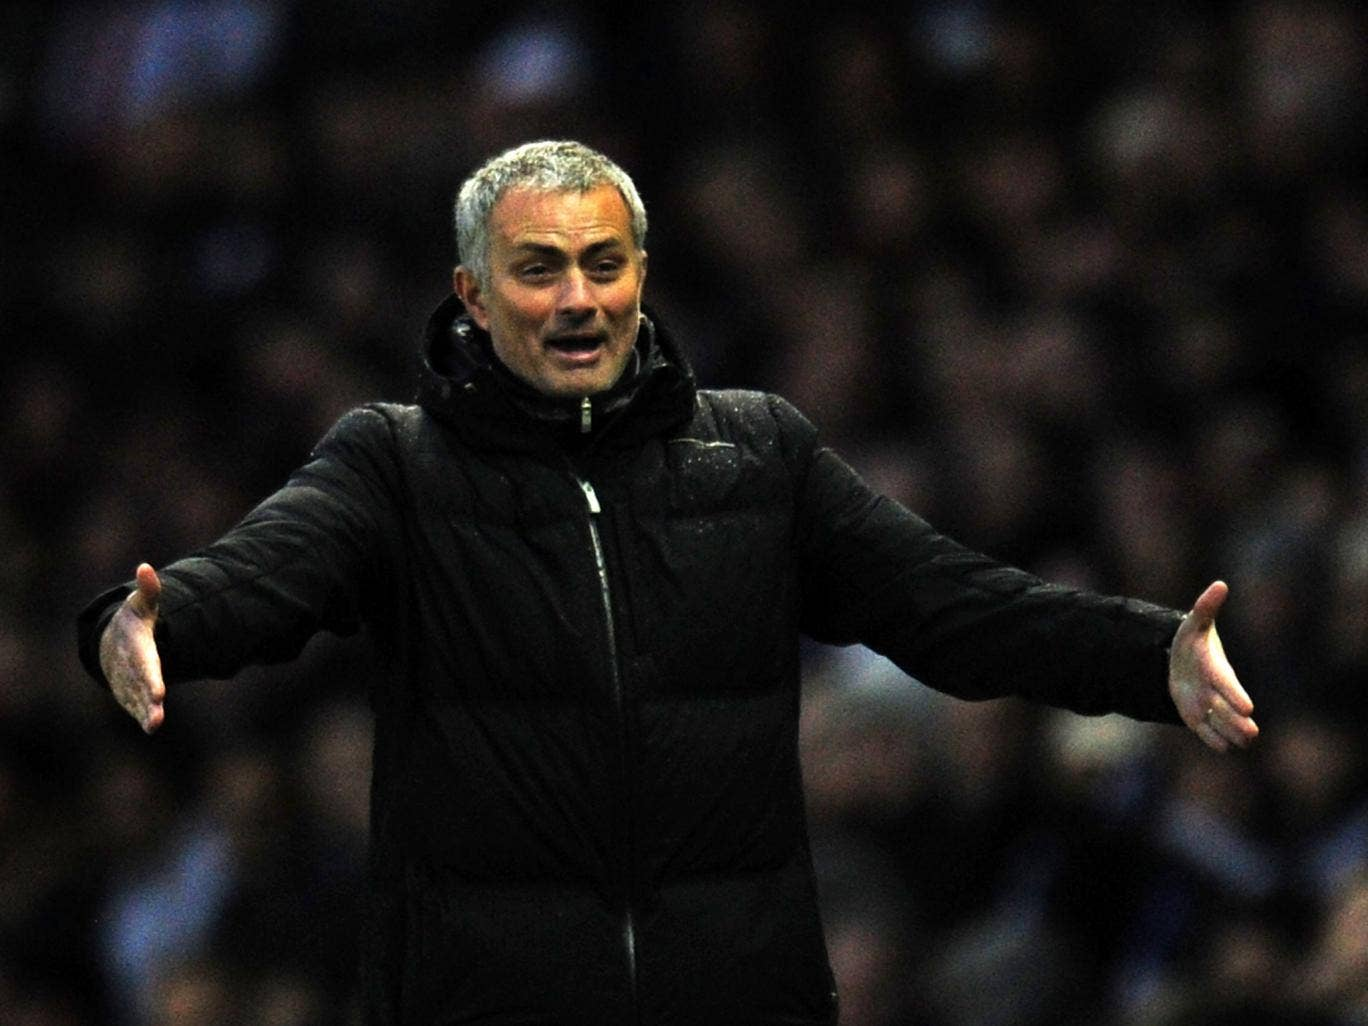 Jose Mourinho has stressed that Chelsea expect to do very little in the transfer window despite rumours linking them with a new signing